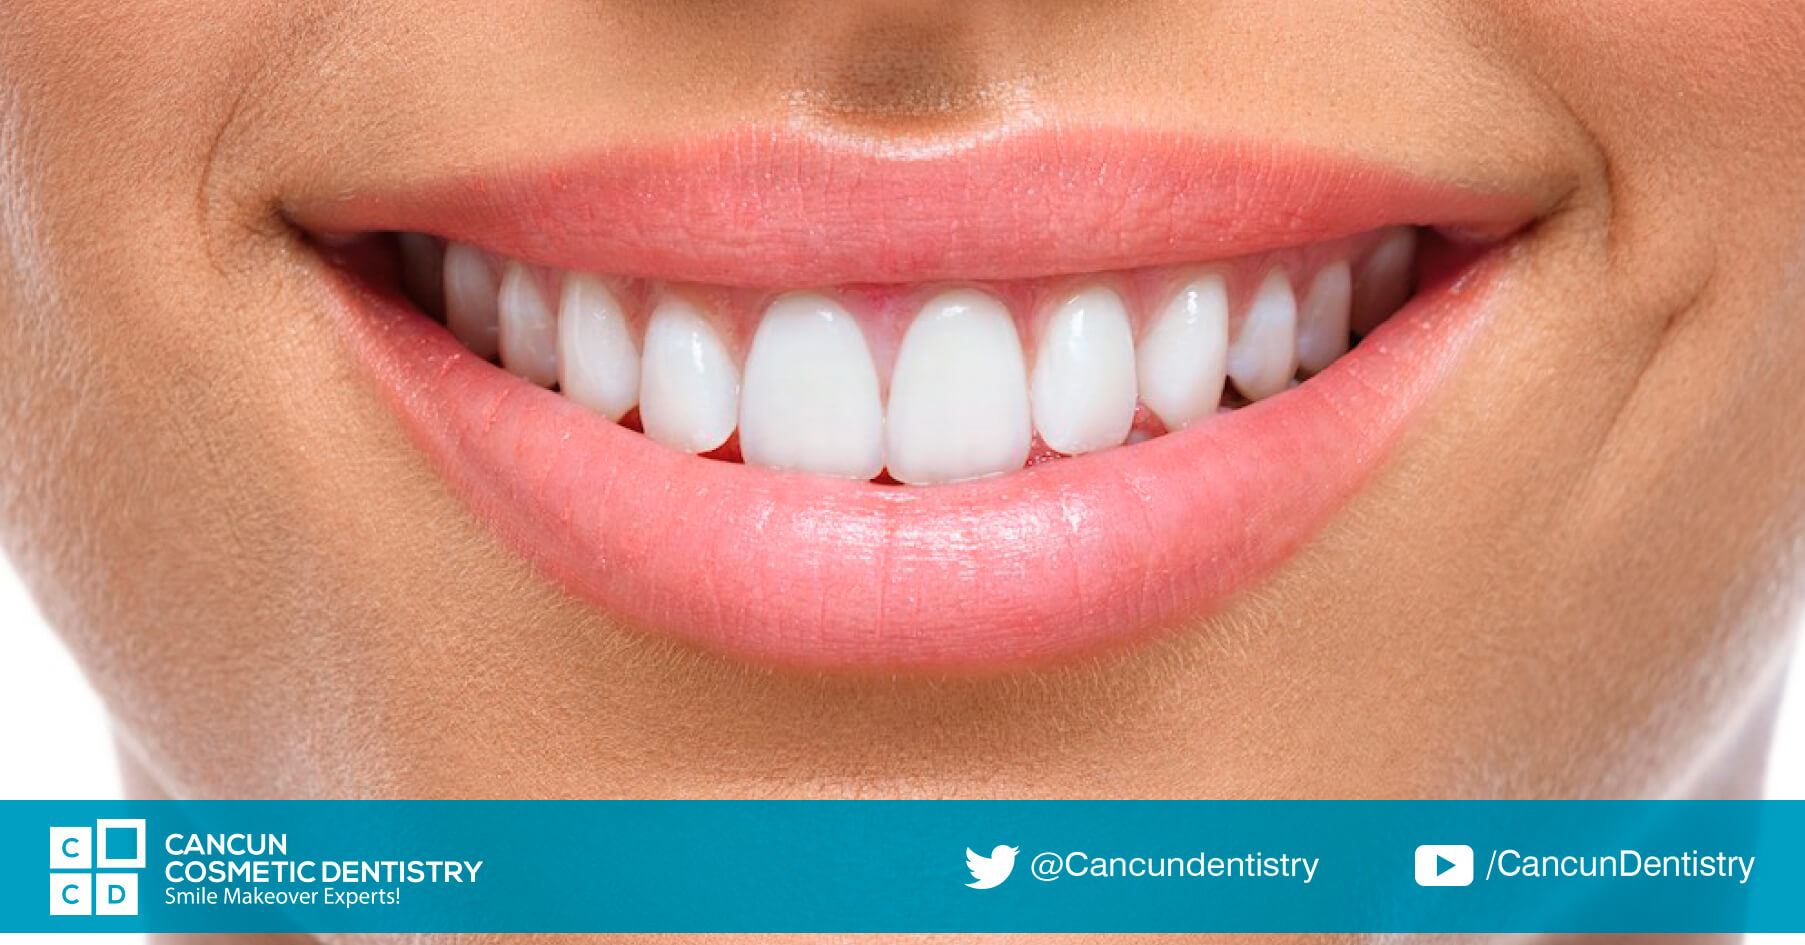 Combining dental implants and cosmetic dentistry for better results!